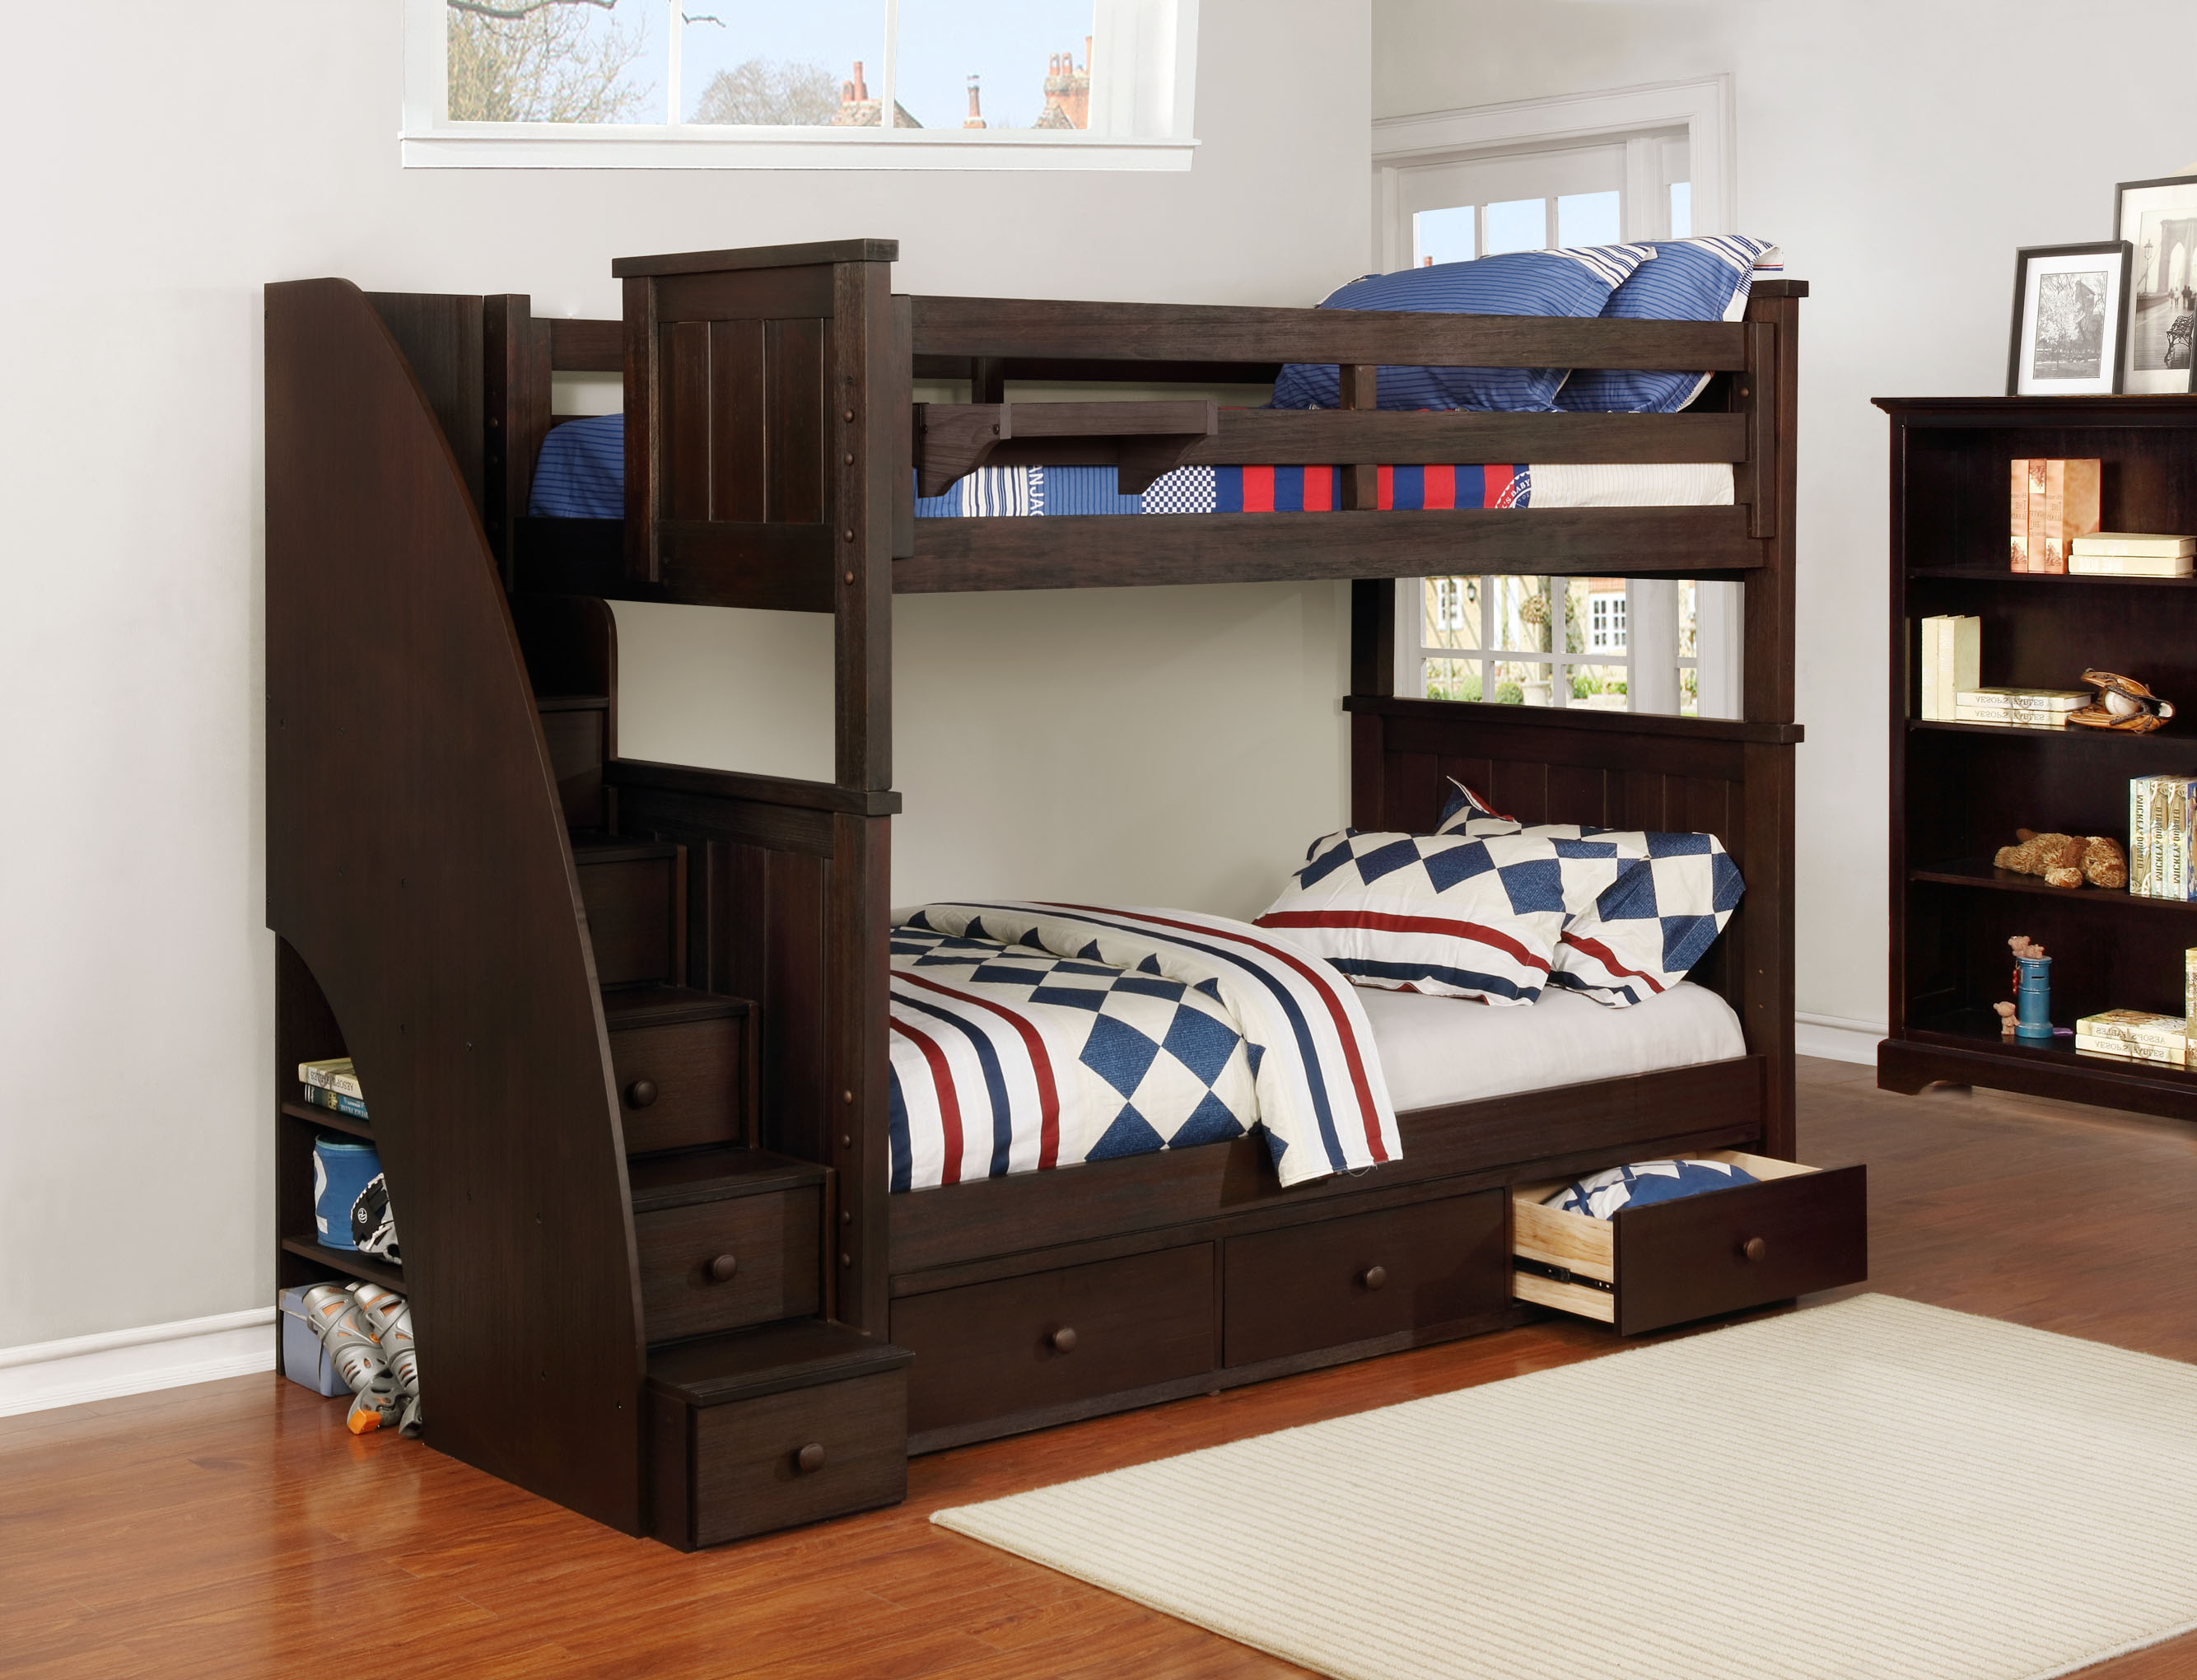 Bed Over Stair Box Google Search: Dock48 Kid's Furniture Chicago And City